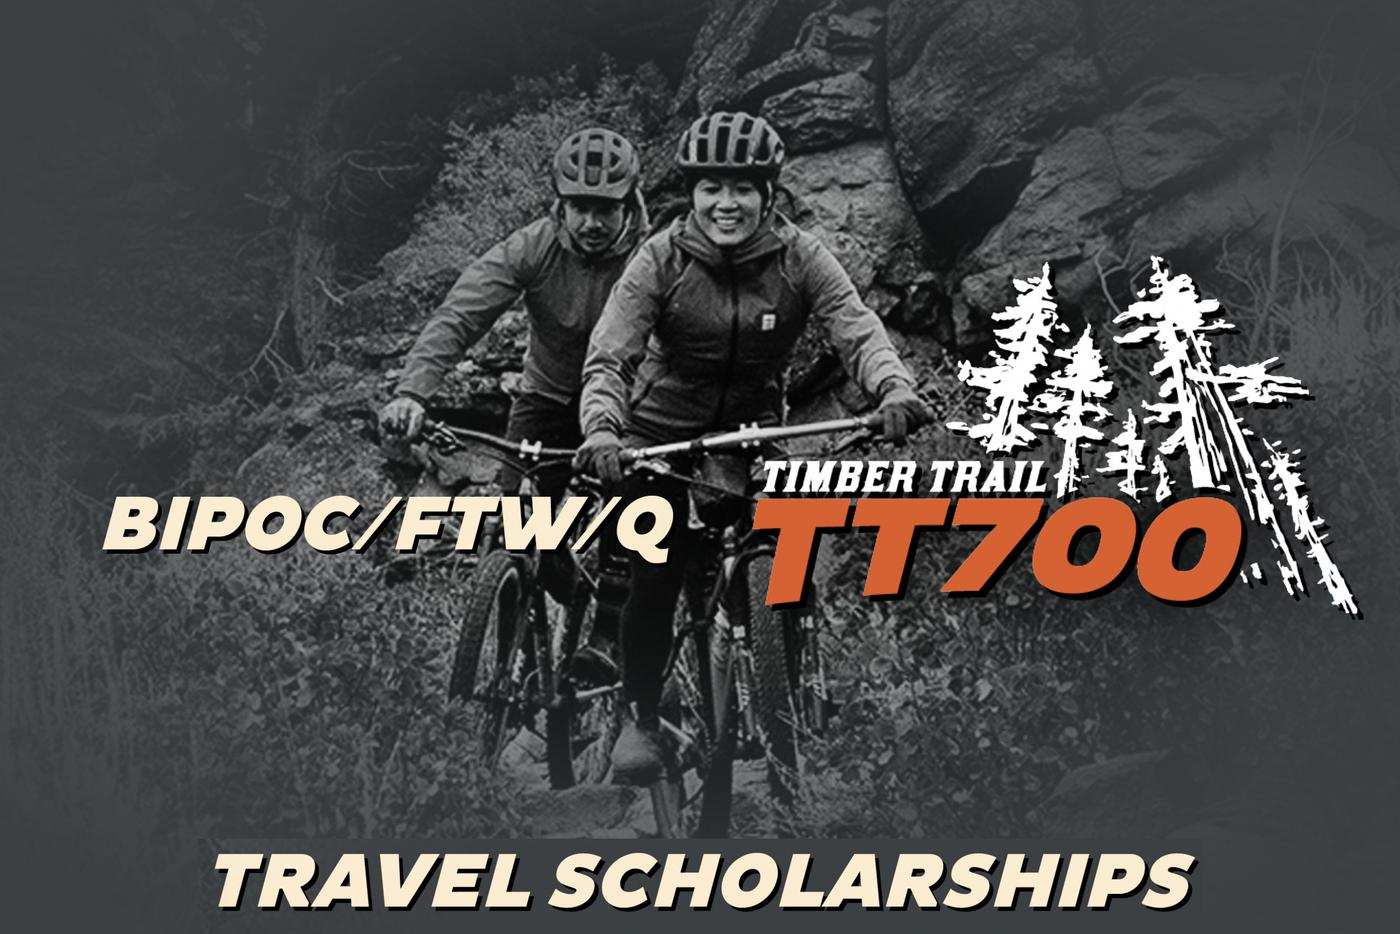 Race the Oregon Timber Trail – BIPOC/FTW/Q Scholarship Fund